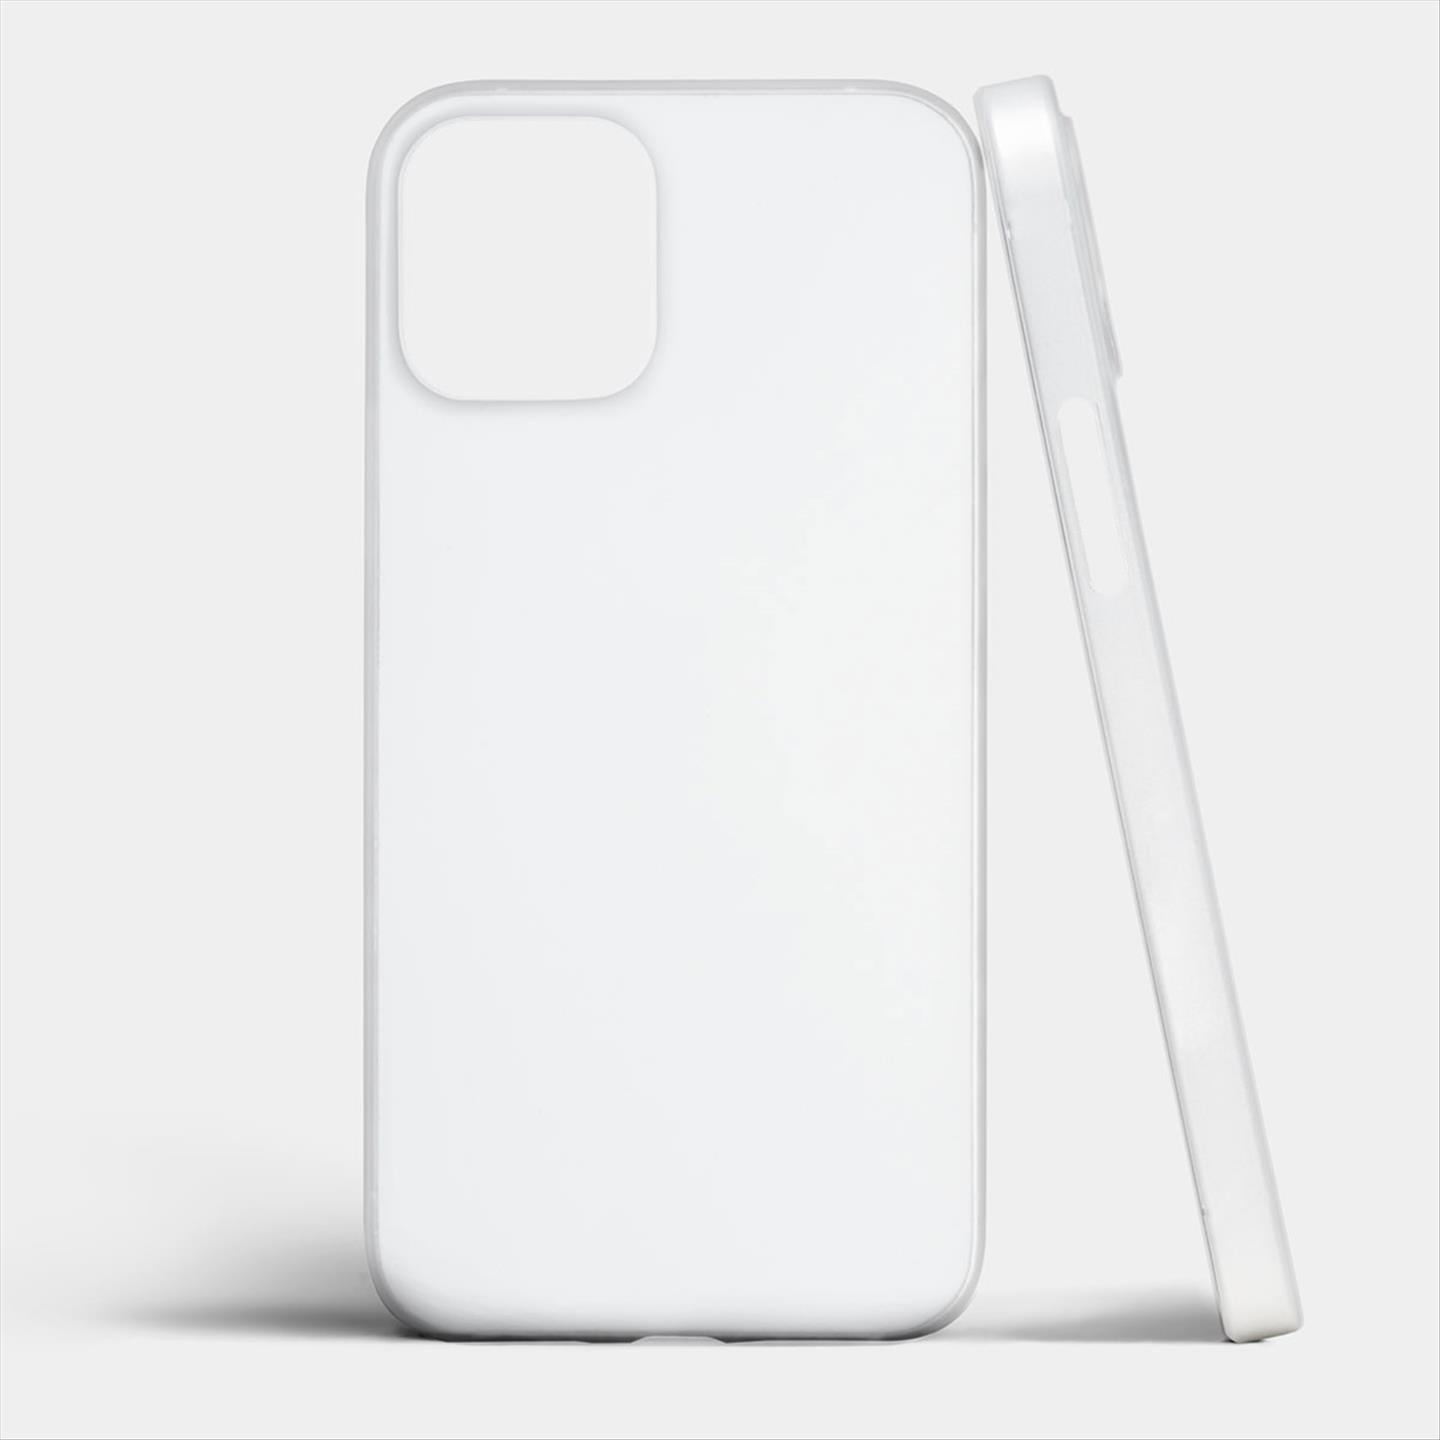 This is how iPhone 12 will look like based on these official iPhone 12 cases